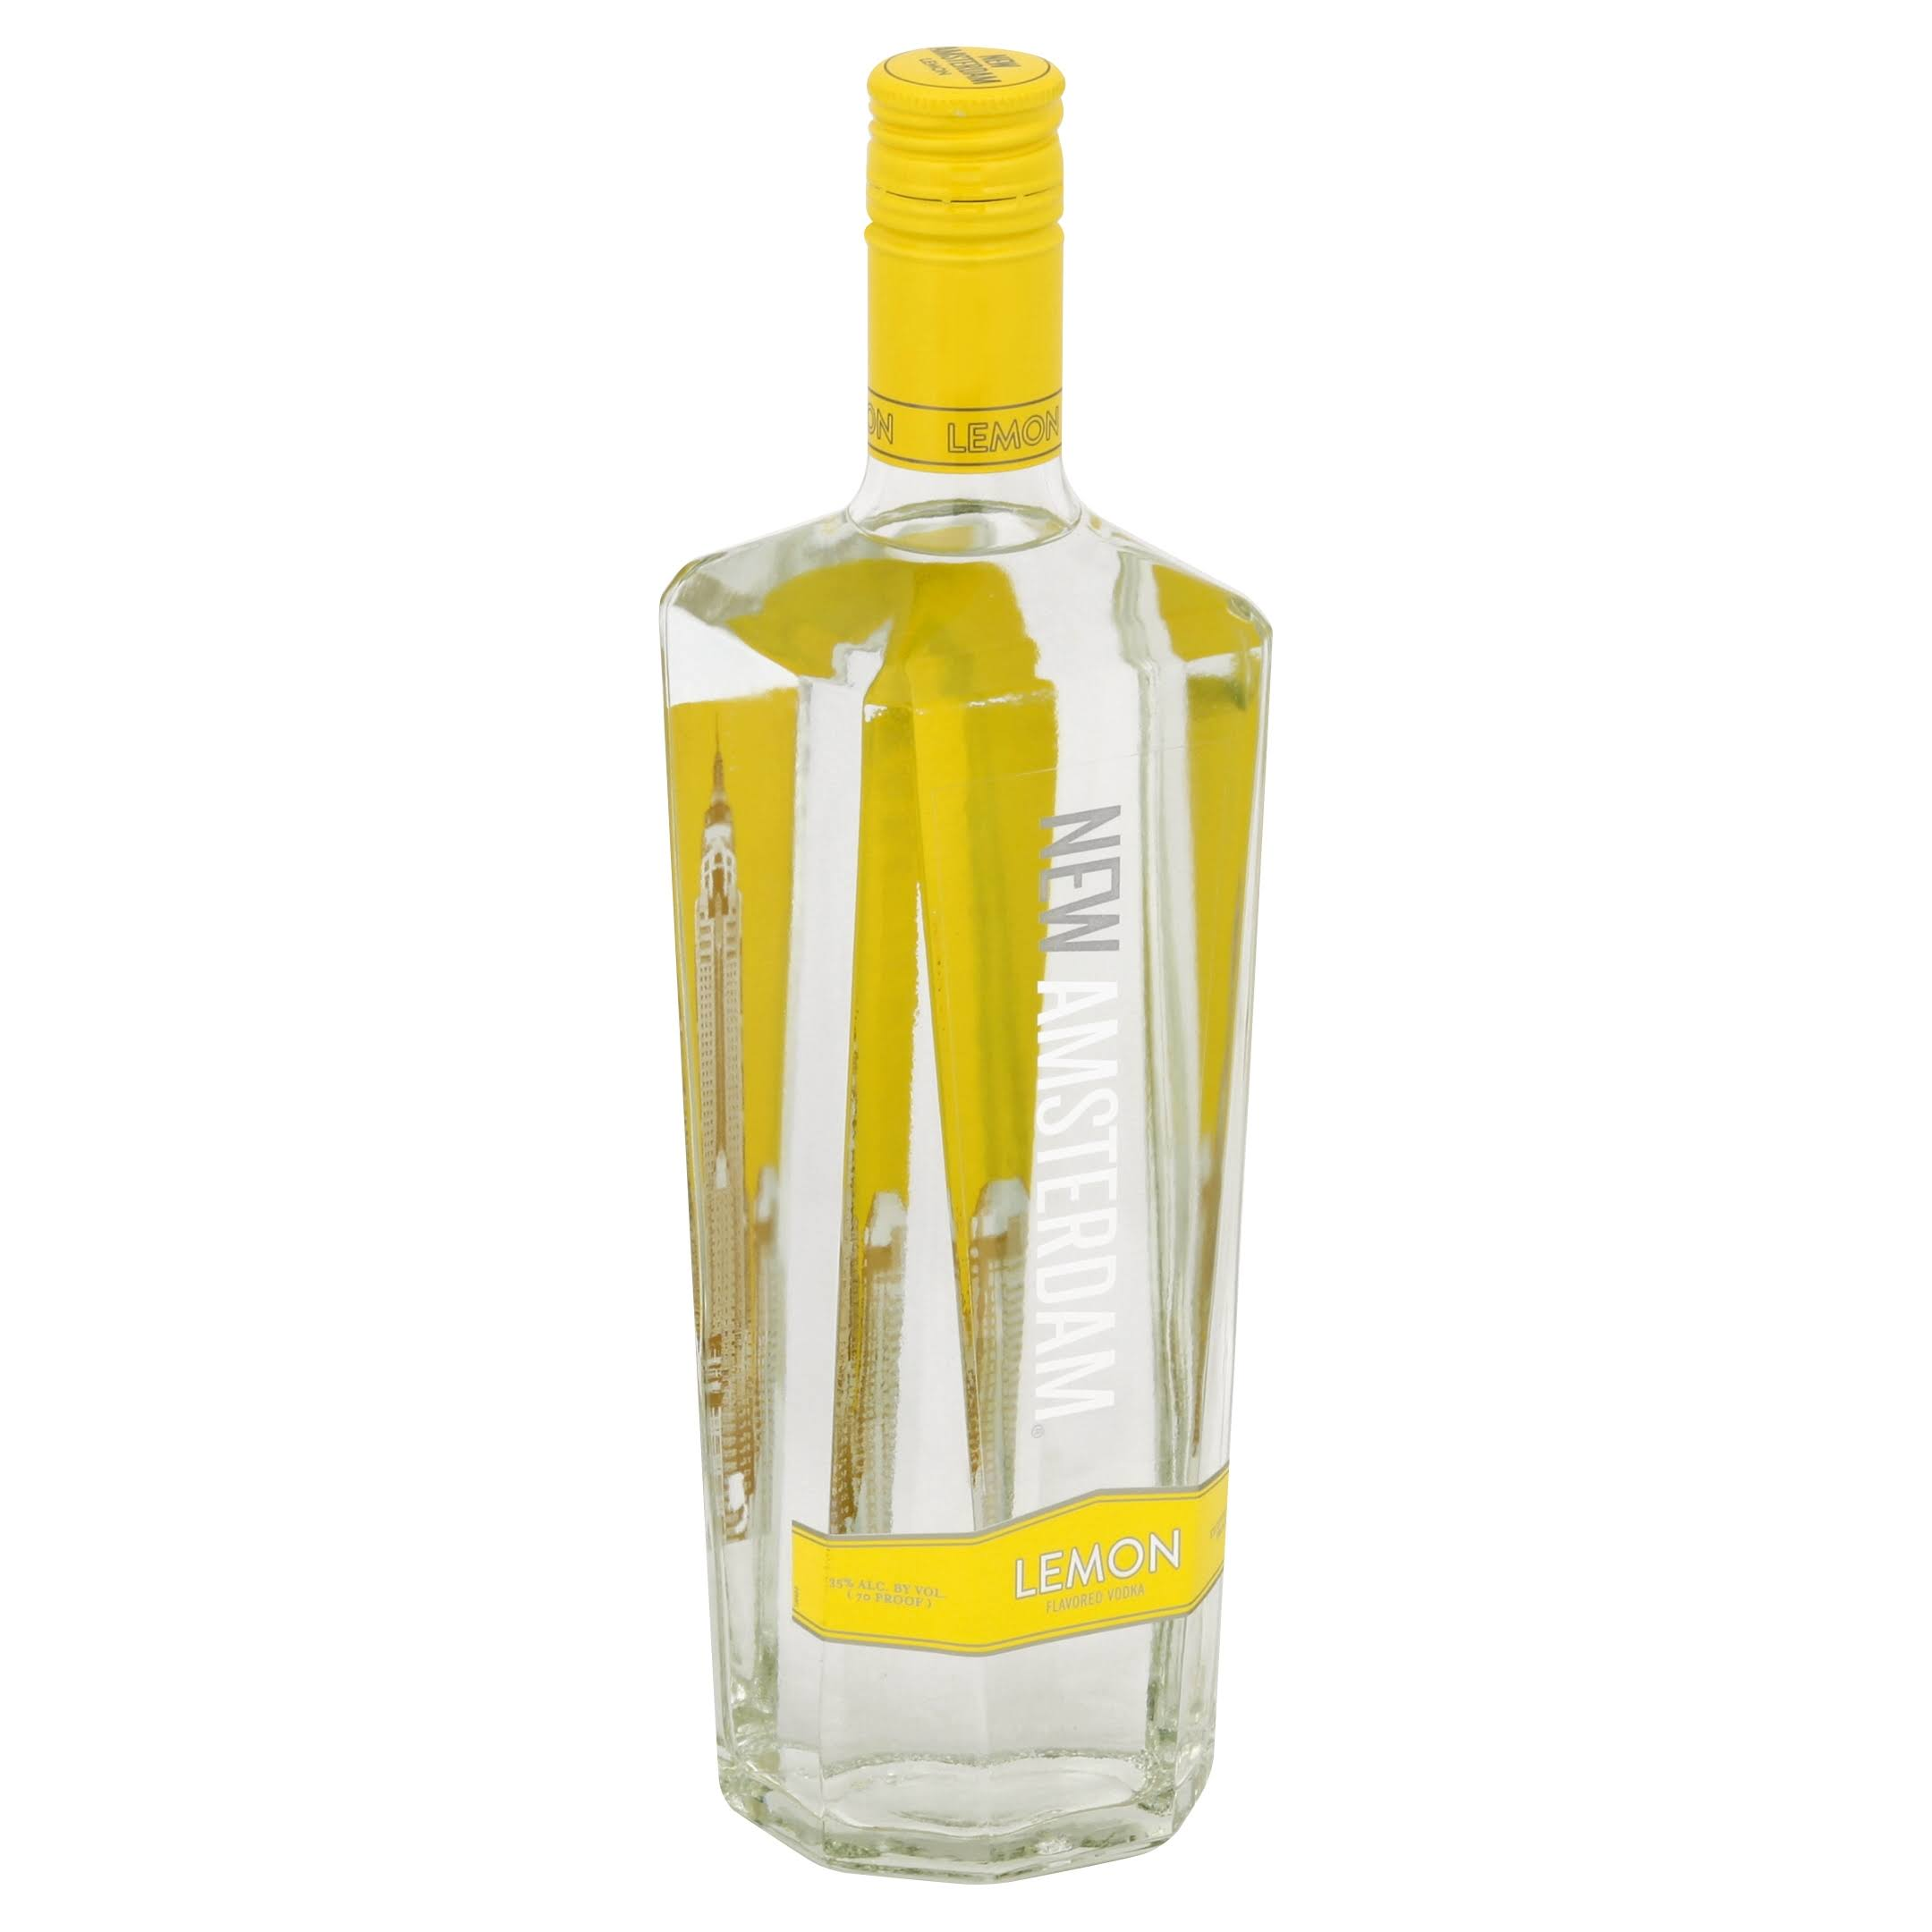 New Amsterdam Vodka, Lemon Flavored - 750 ml